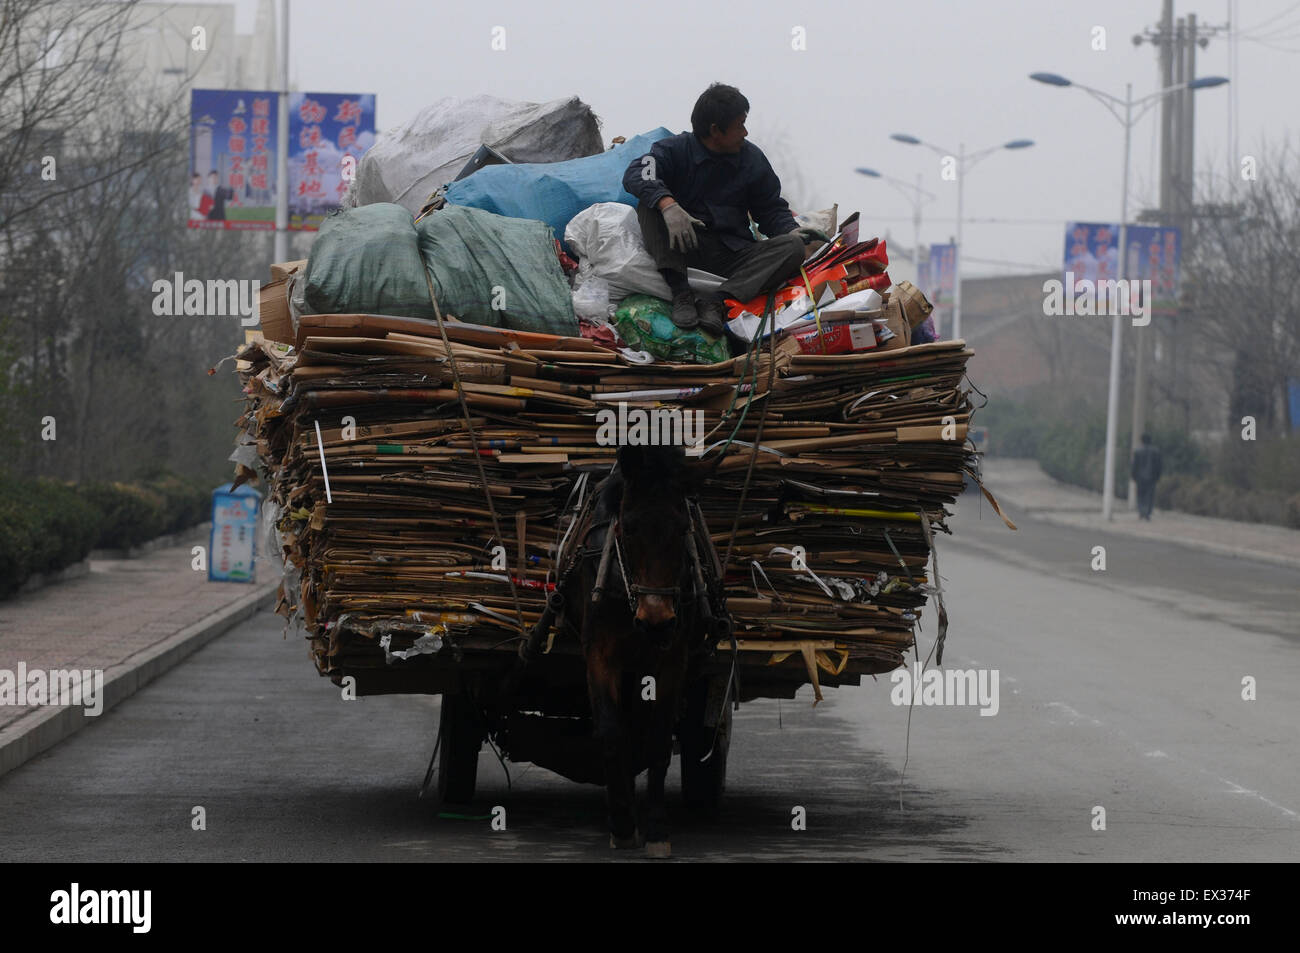 A labourer transports recycled usable things with a cart on a street in Changzhi, Shanxi province April 11, 2010. - Stock Image